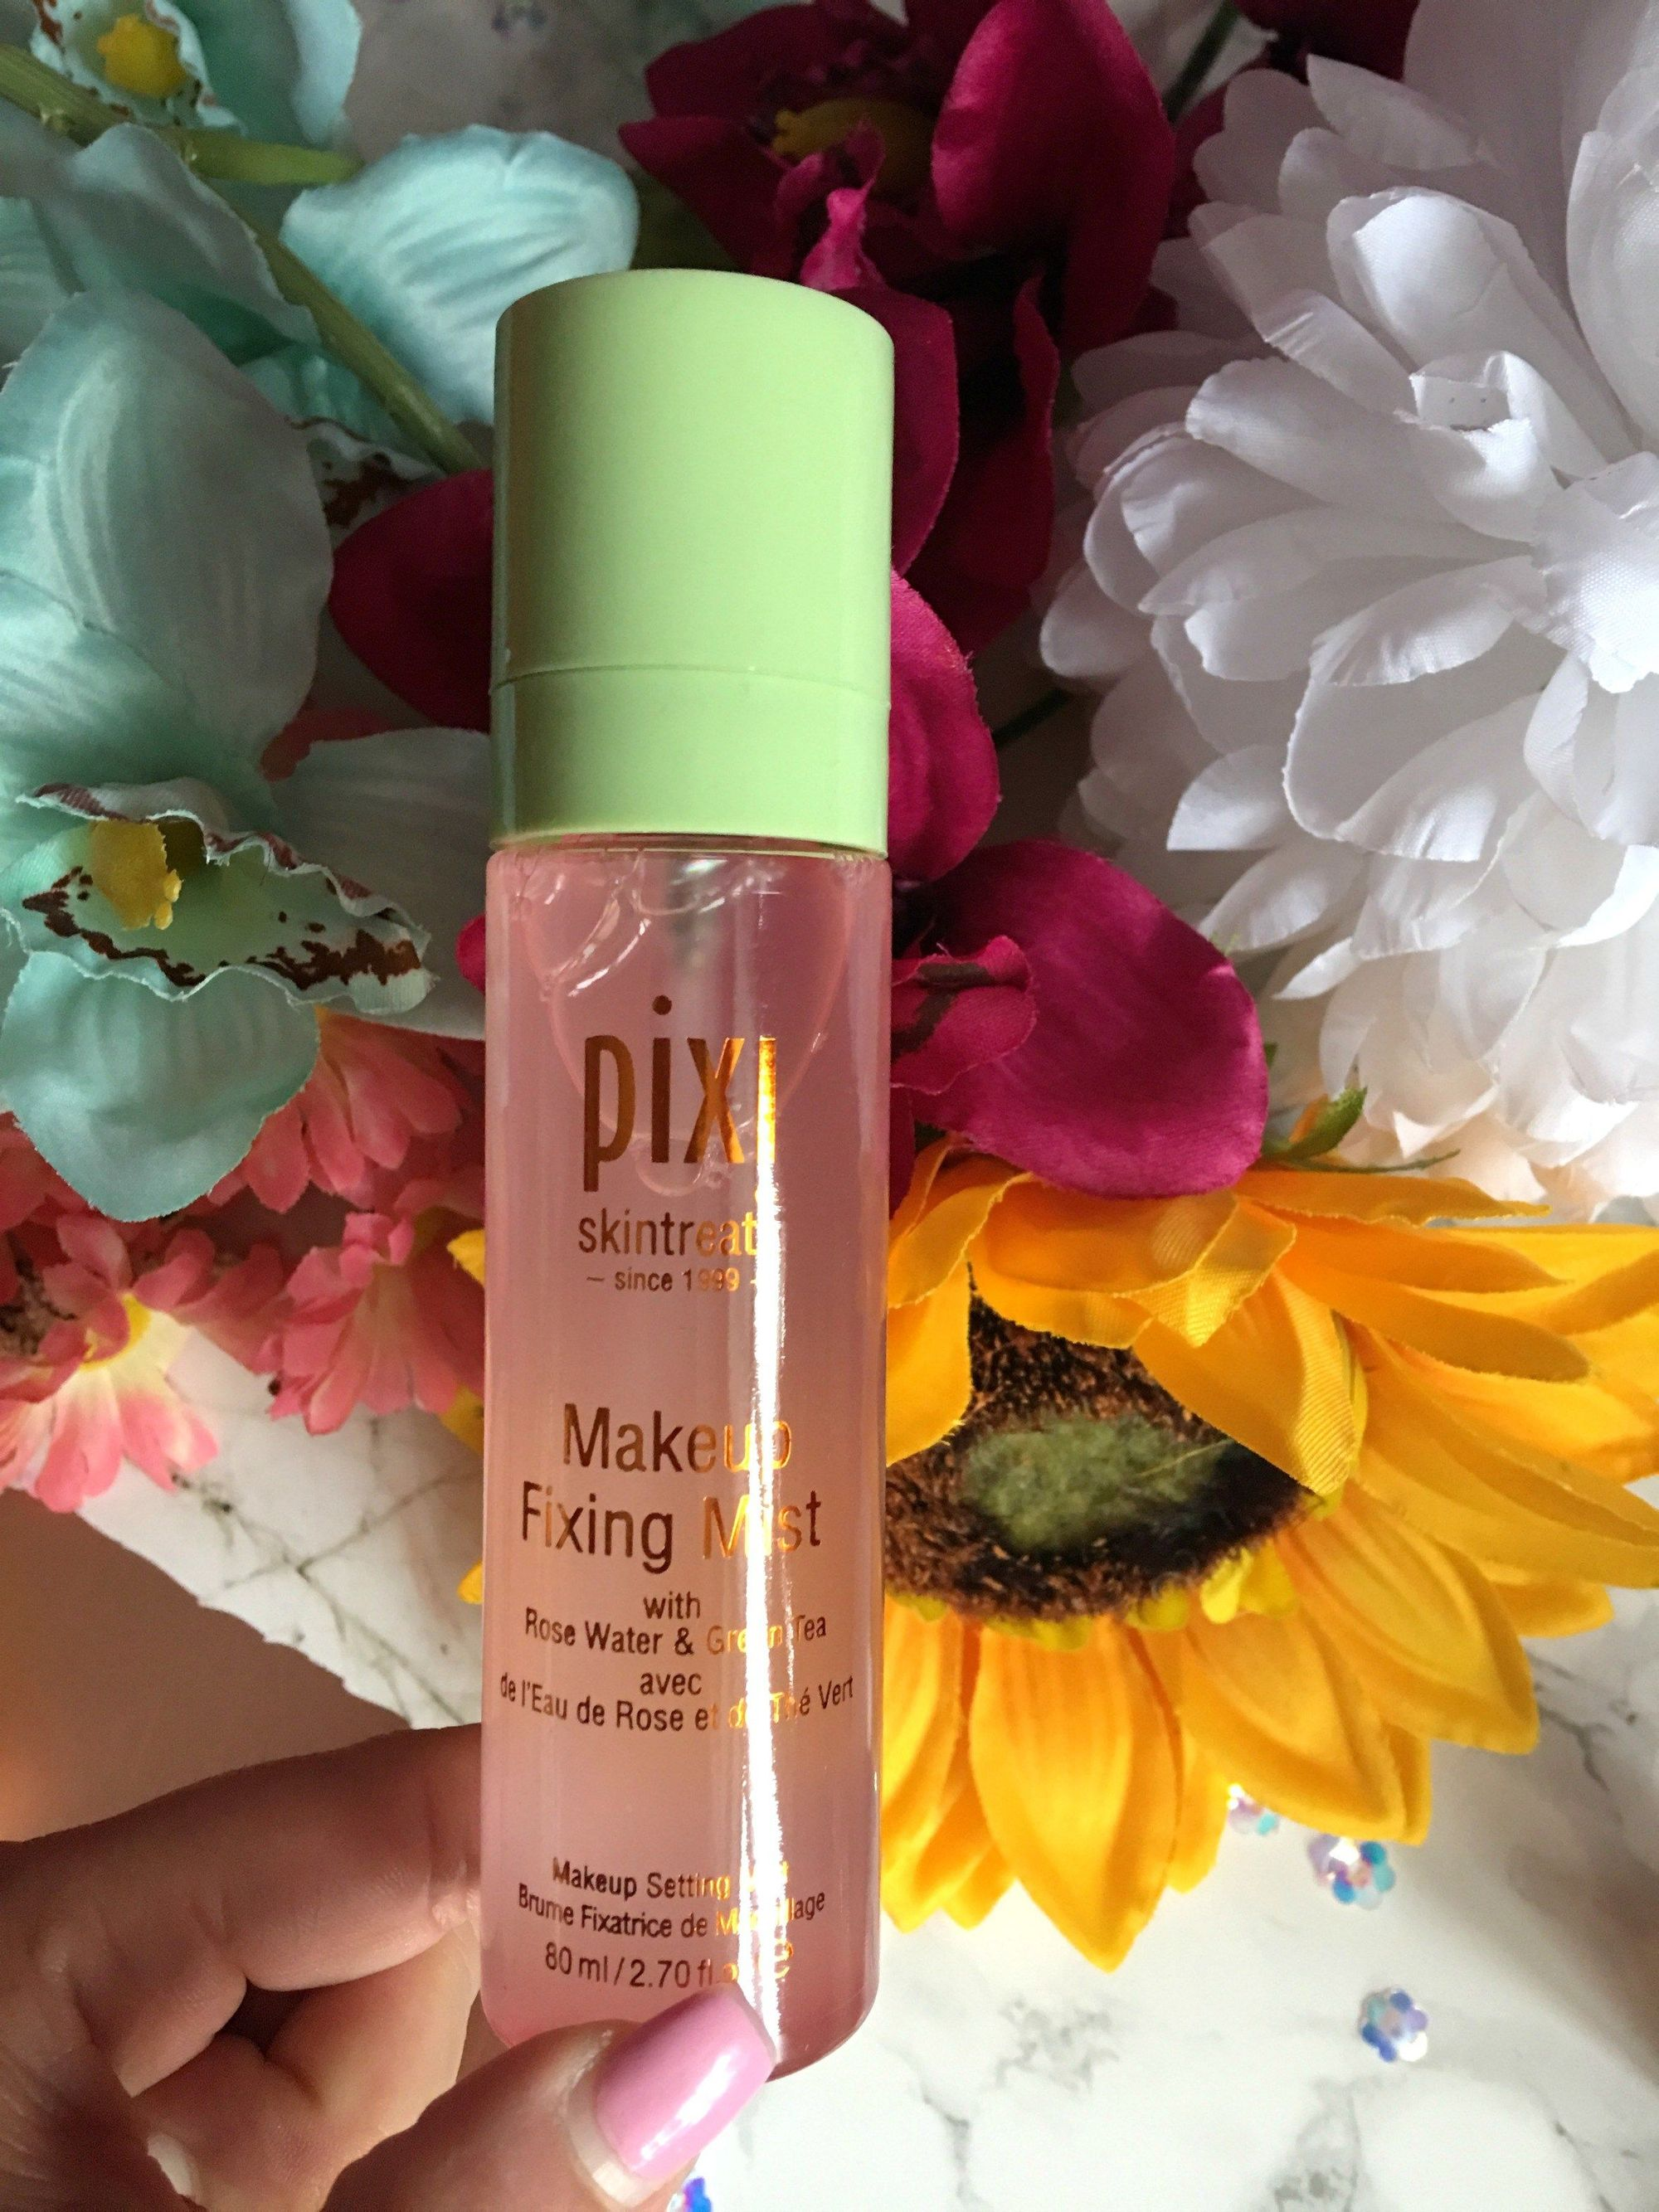 Beauty Skin Care Pixi Product